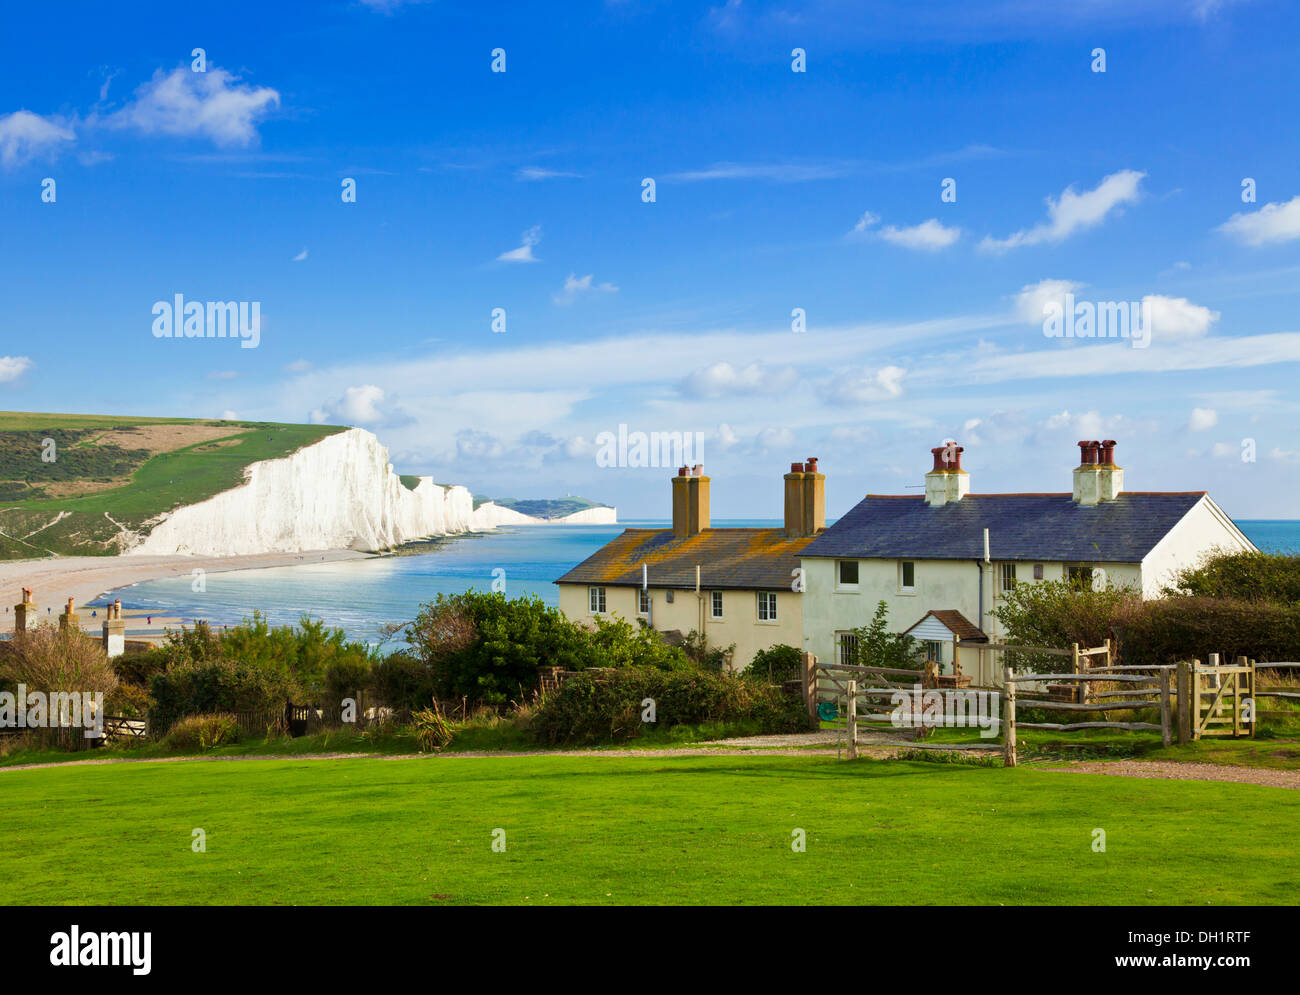 The Seven Sisters cliffs, the coastguard cottages South Downs Way, South Downs National Park, East Sussex, England, UK, GB, EU - Stock Image